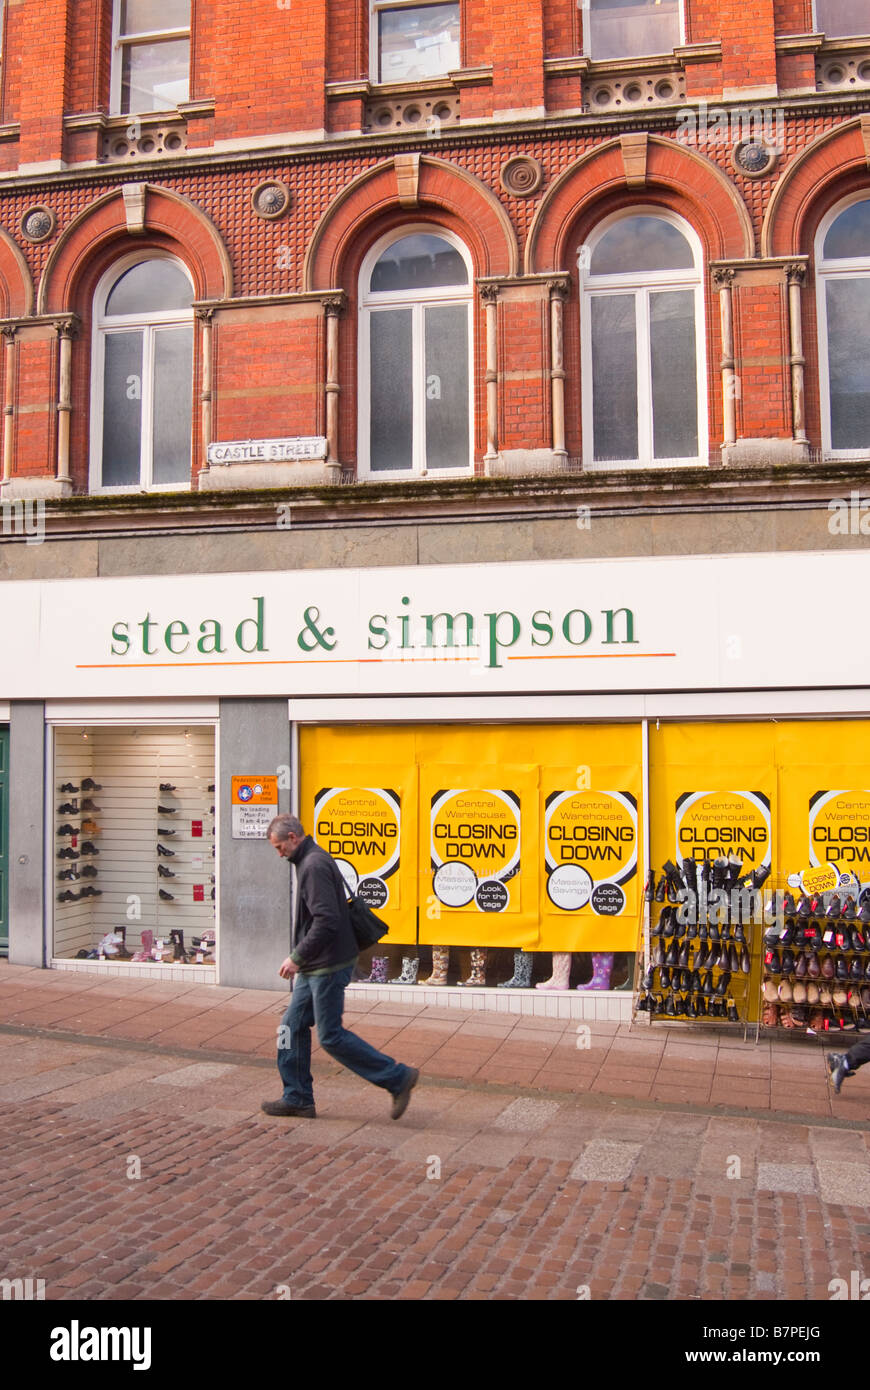 Stead And Simpson Shoe Shop